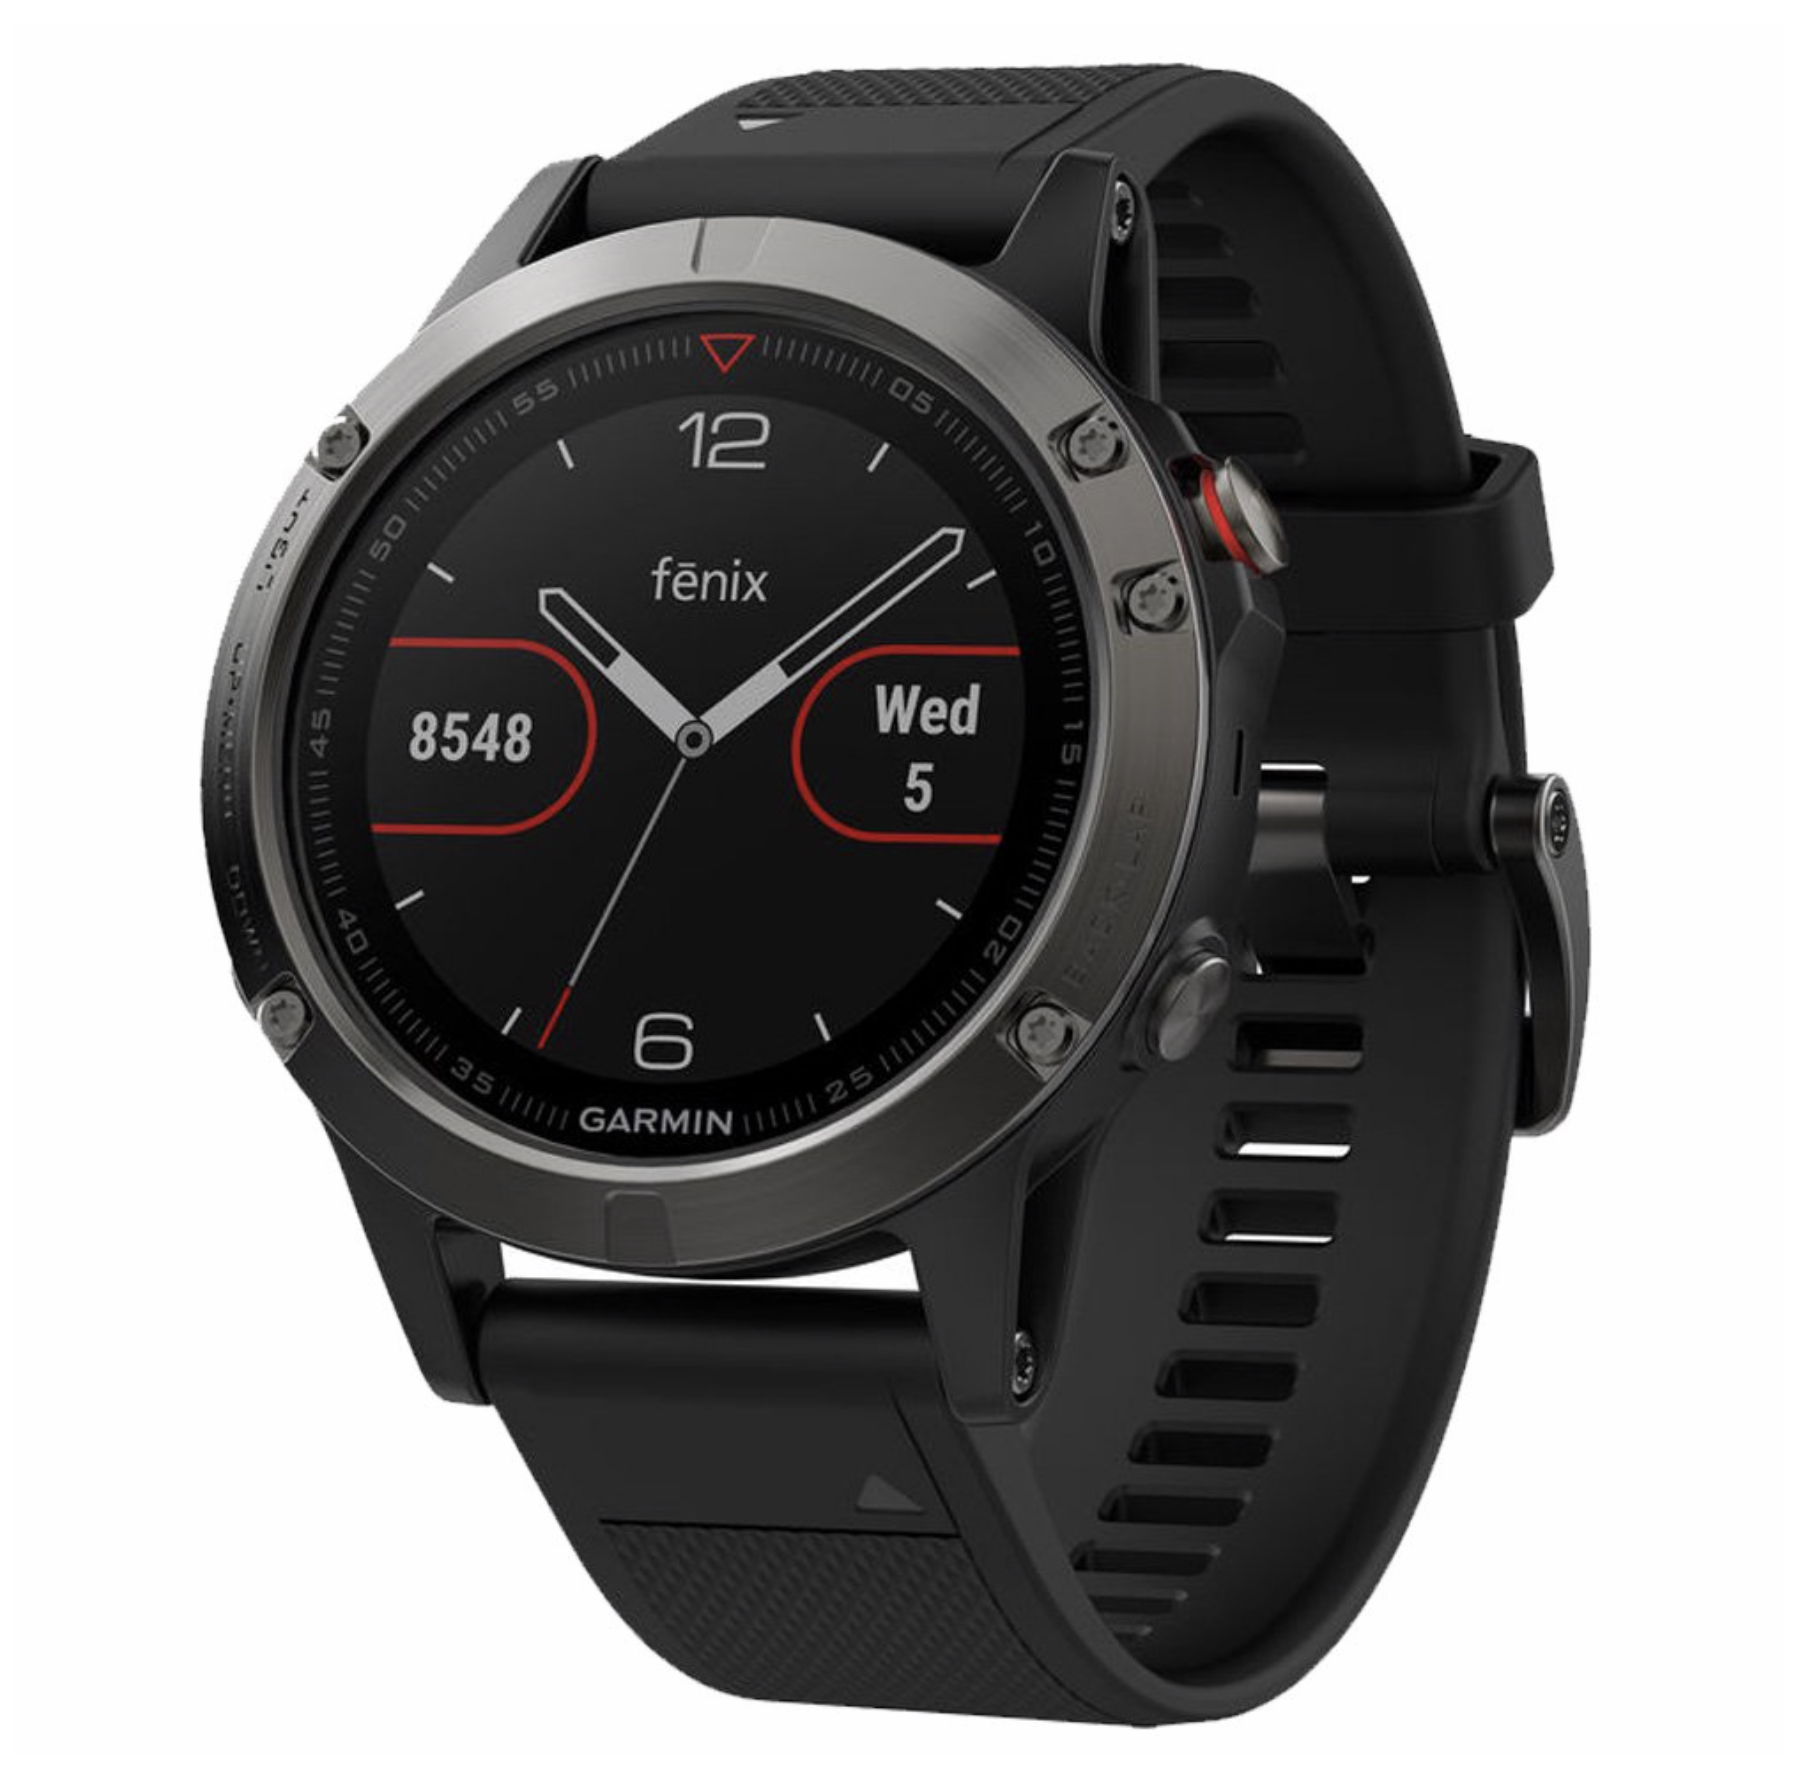 Garmin Fenix 5 GPS & HR  - Omni-directional stainless steel EXO™ antenna, with GPS/GLONASS satellite reception, has the ability to track in more challenging environments than GPS alone. Elevate™ wrist heart rate technology¹ measures heart rate at the wrist. Fitness training features like advanced running dynamics with vertical oscillation and vertical ratio, VO2 max, recovery advisor and more. 1.2-inch sunlight-readable Garmin Chroma Display™ with high-strength domed sapphire lens. Outdoor navigation features like 3-axis compass, altimeter and barometer and TracBack® feature.